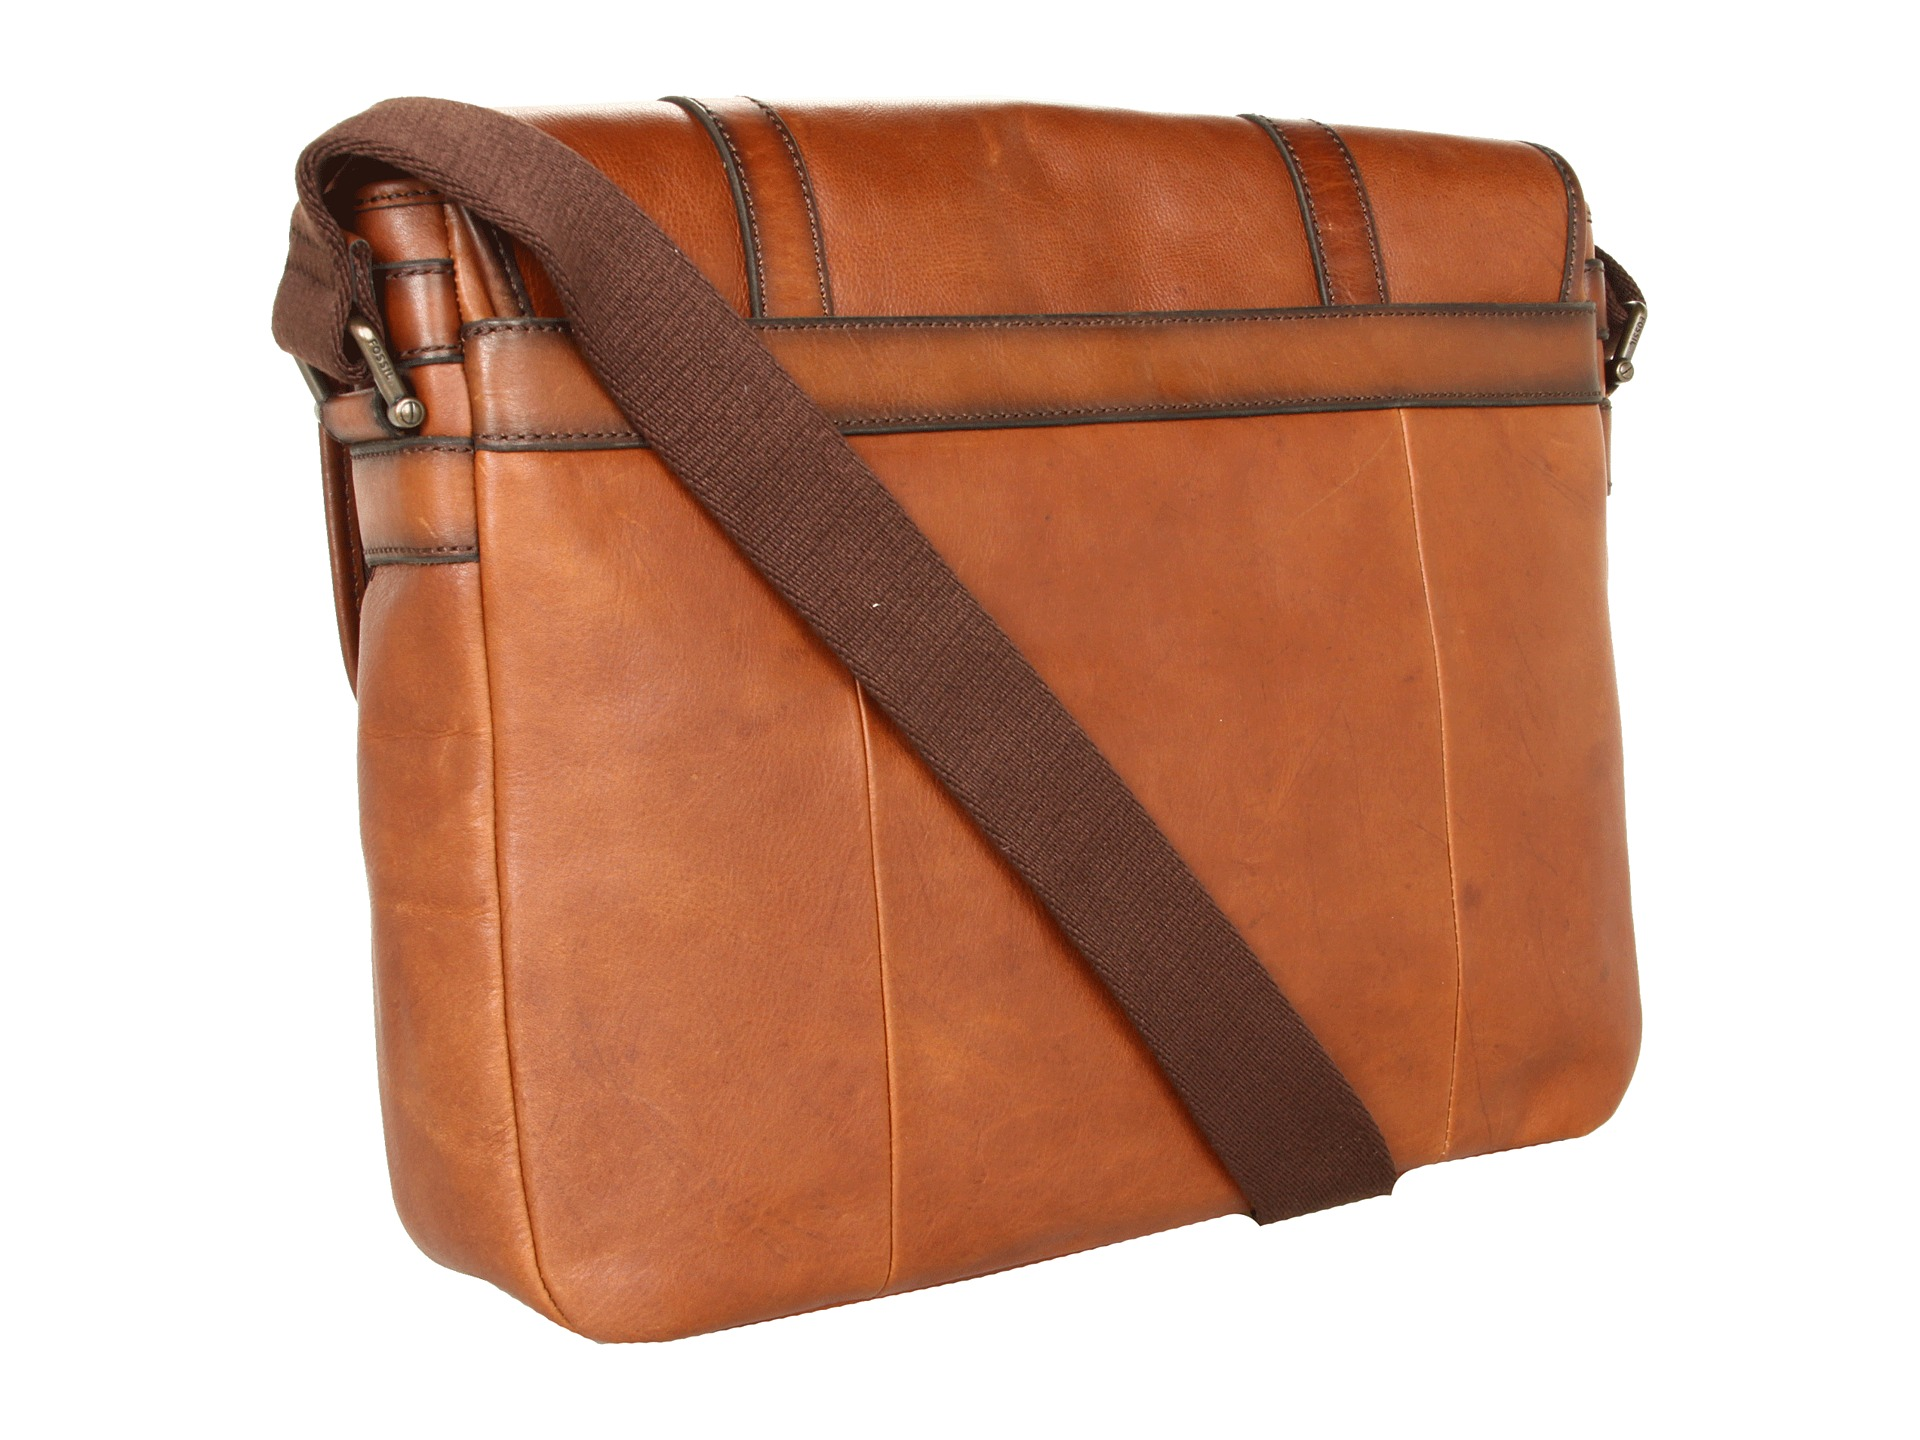 Luxury This Distressed Colombian Leather Messenger Bag Is A Great Gift For Your Husband That Will Keep  Or You Just Want To Get Him A Super Cool Timekeeping Friend With Benefits, This Fossil Q Wander Watc